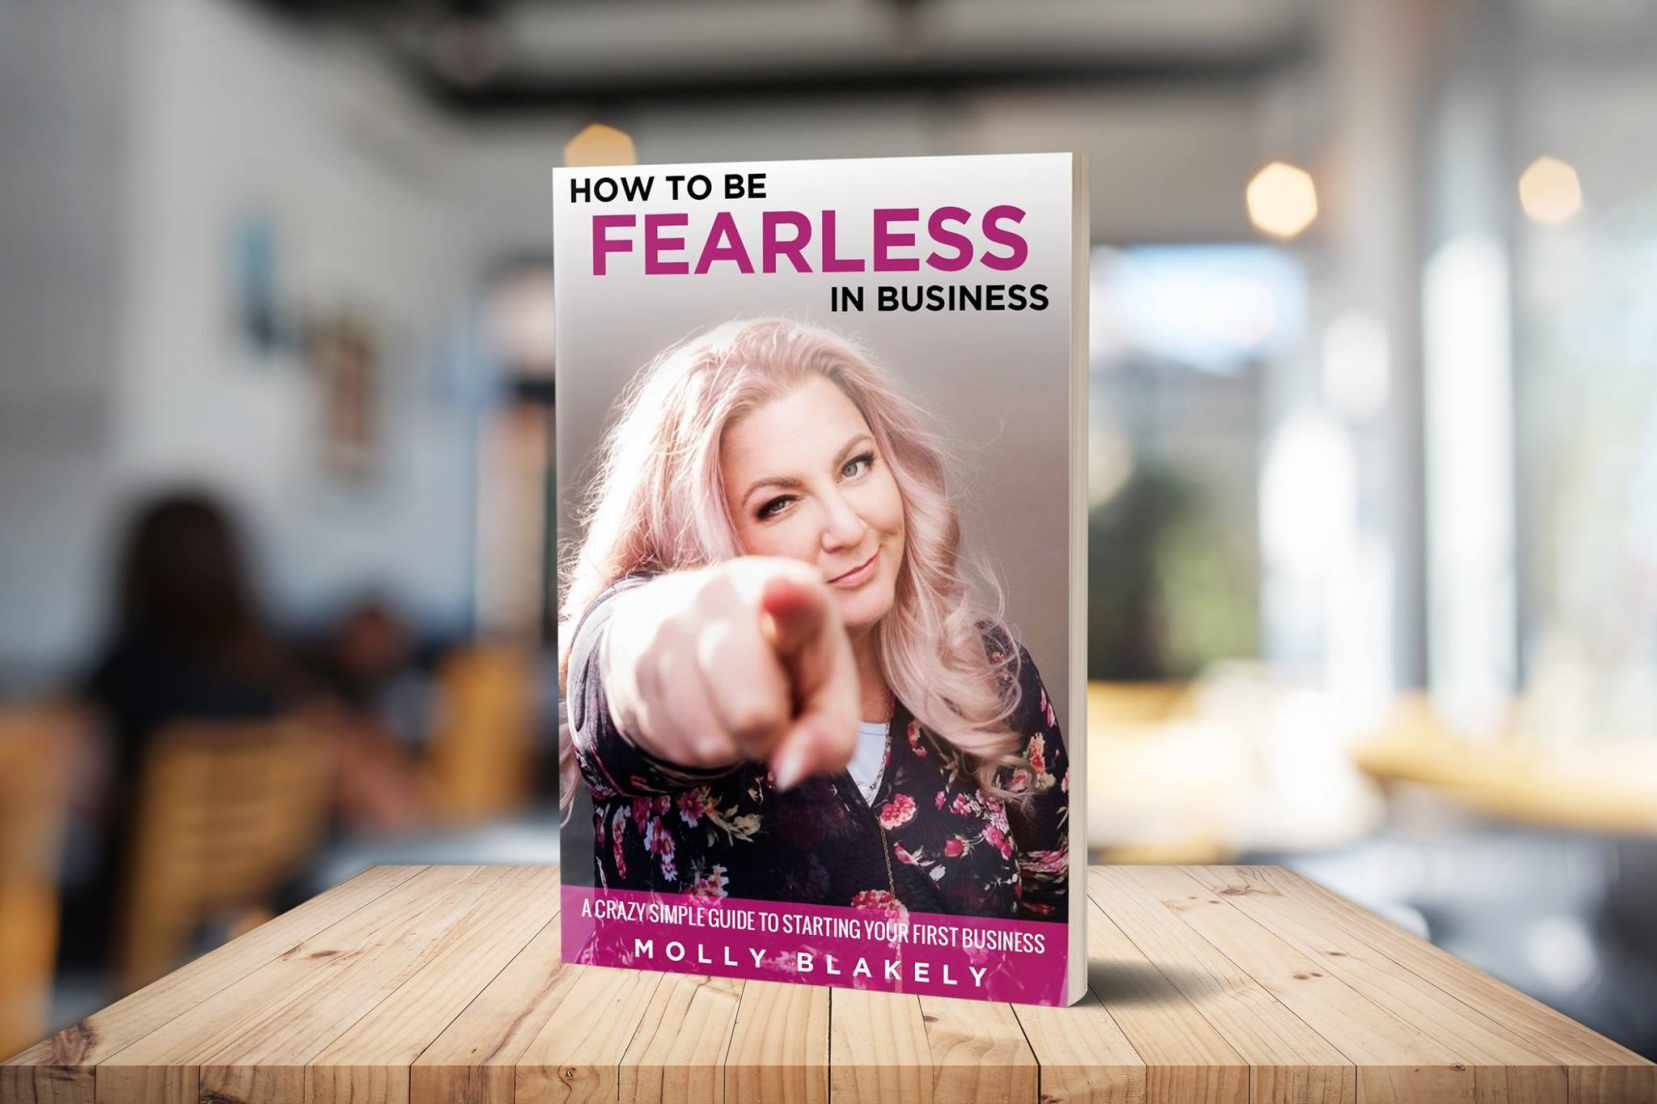 How to Be Fearless in Business by Molly Blakeley